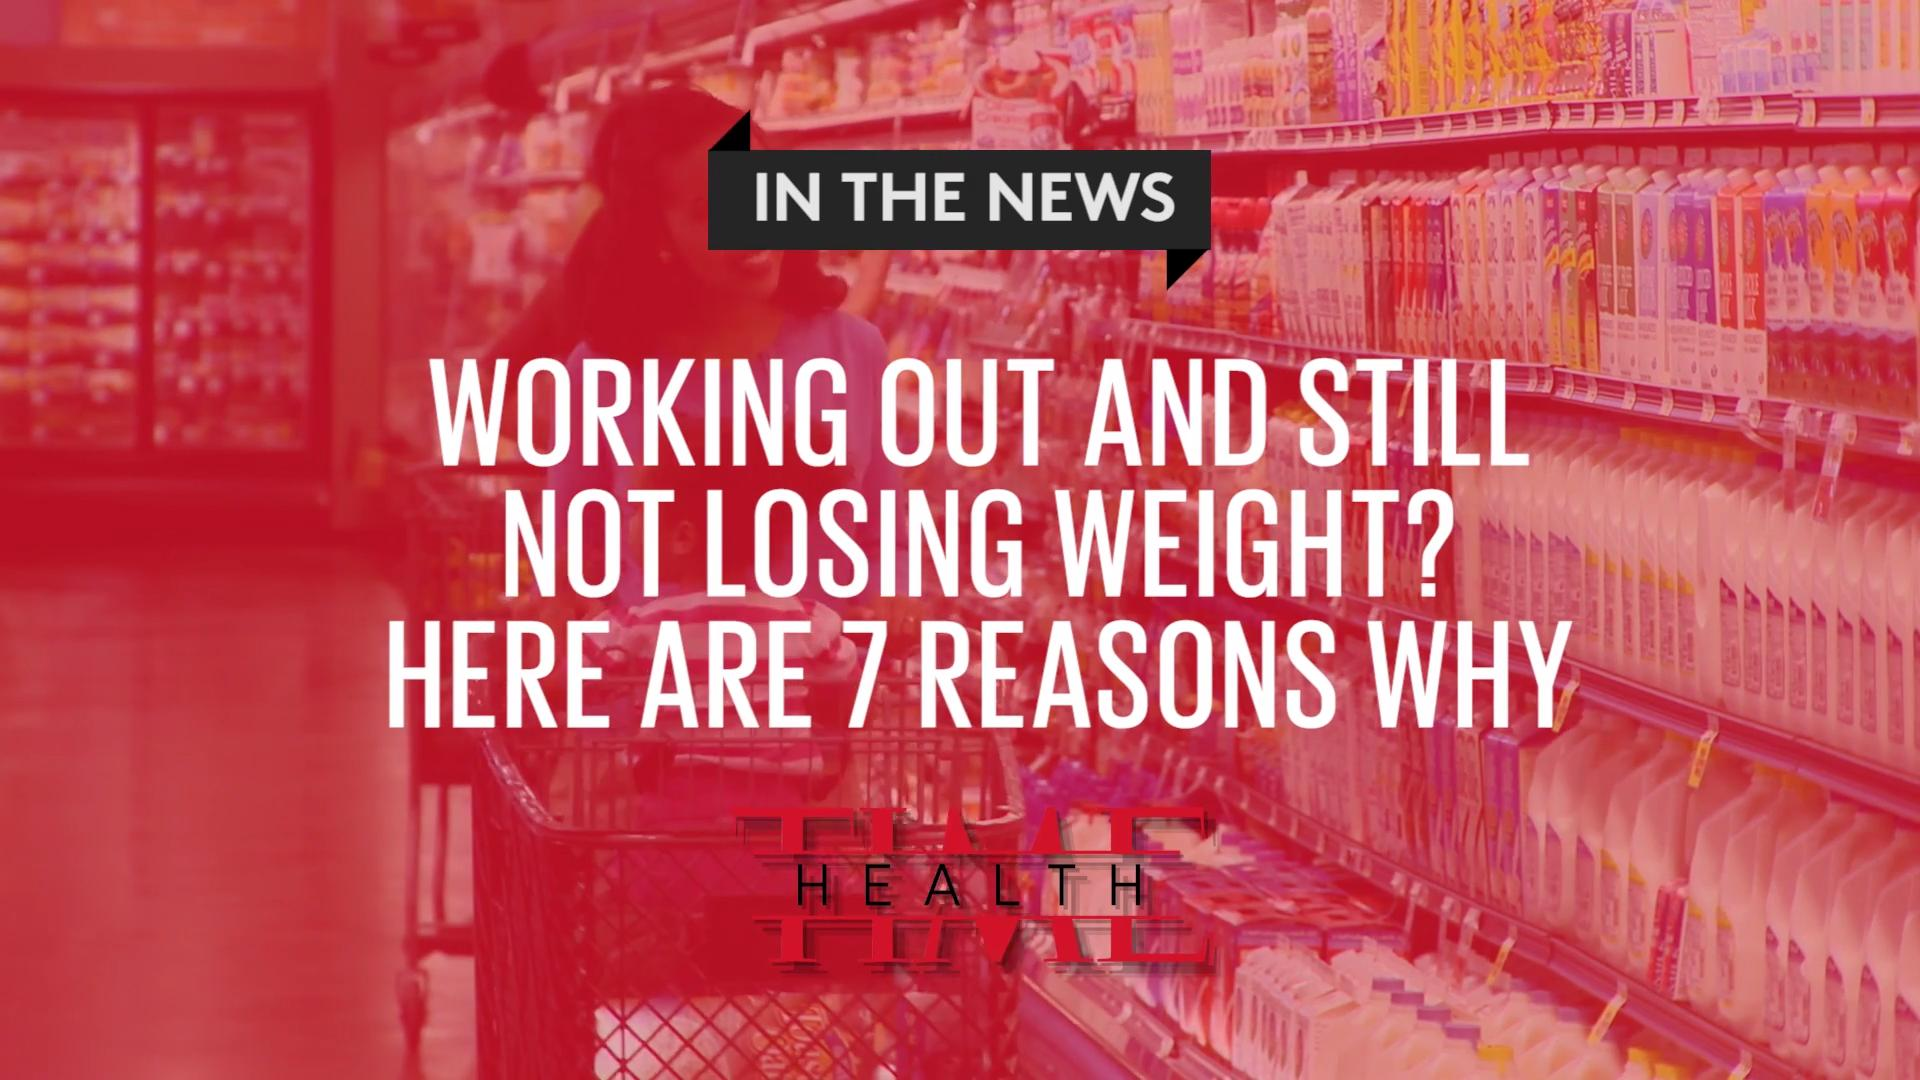 Working Out and Still Not Losing Weight? Here Are 7 Reasons